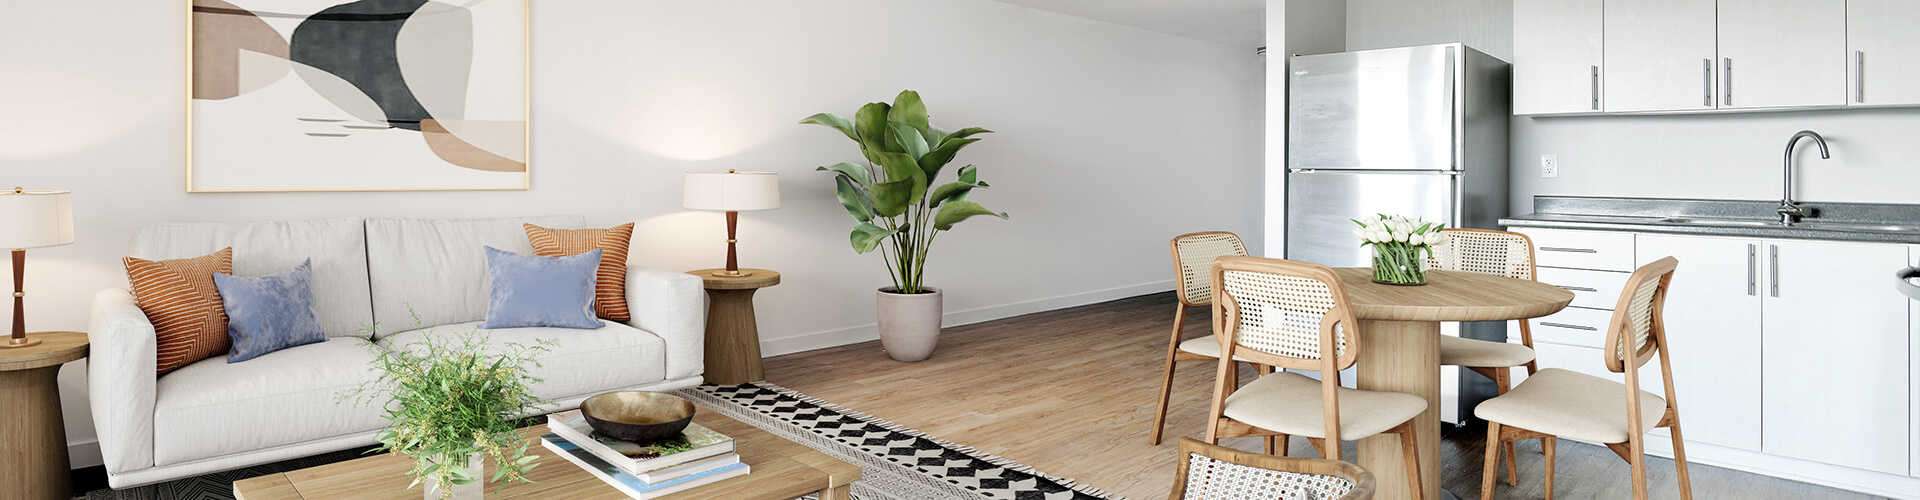 Modern living room at Navaho Walk-ips Apartments in Ottawa. Rent with Minto Apartments.